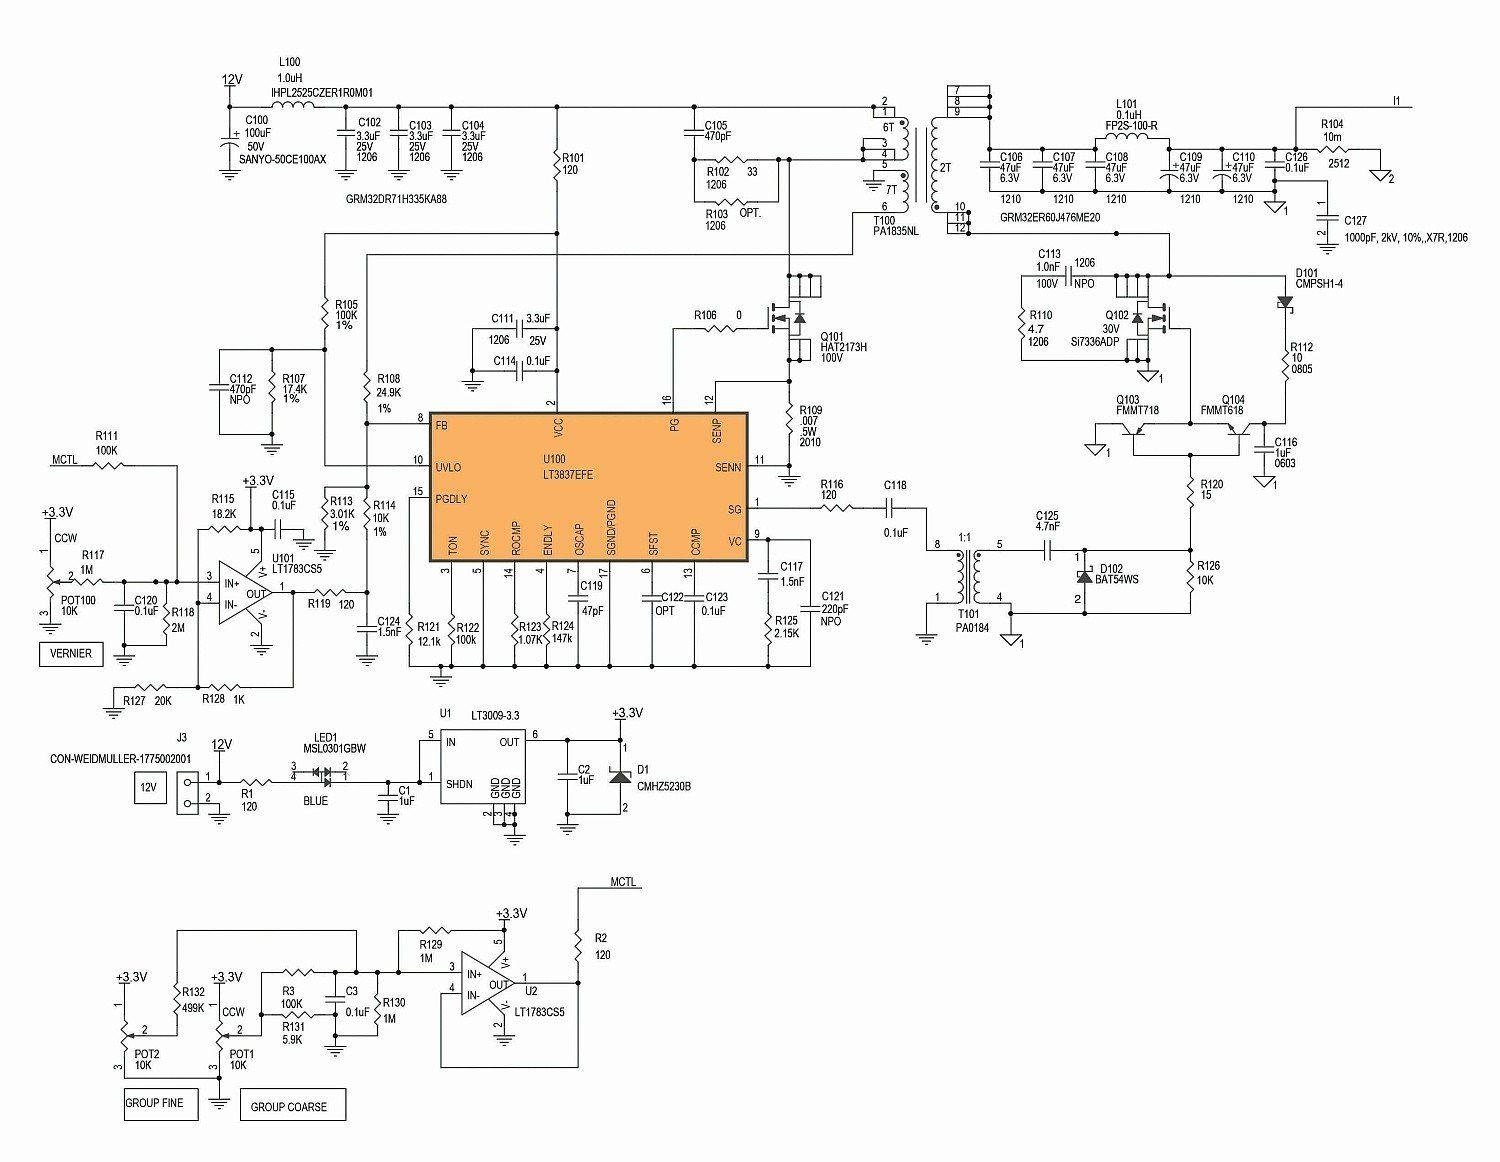 Build An Electronic Battery Simulator Eenews Power Reed Switch Controls Operational Amplifier Circuit Diagram For Computerized Voltage Control The Op Amp Signals Can Be Replaced With Dacs Such As 16 Channel Ltc2668 Figure 4 Complete Cell Schematic